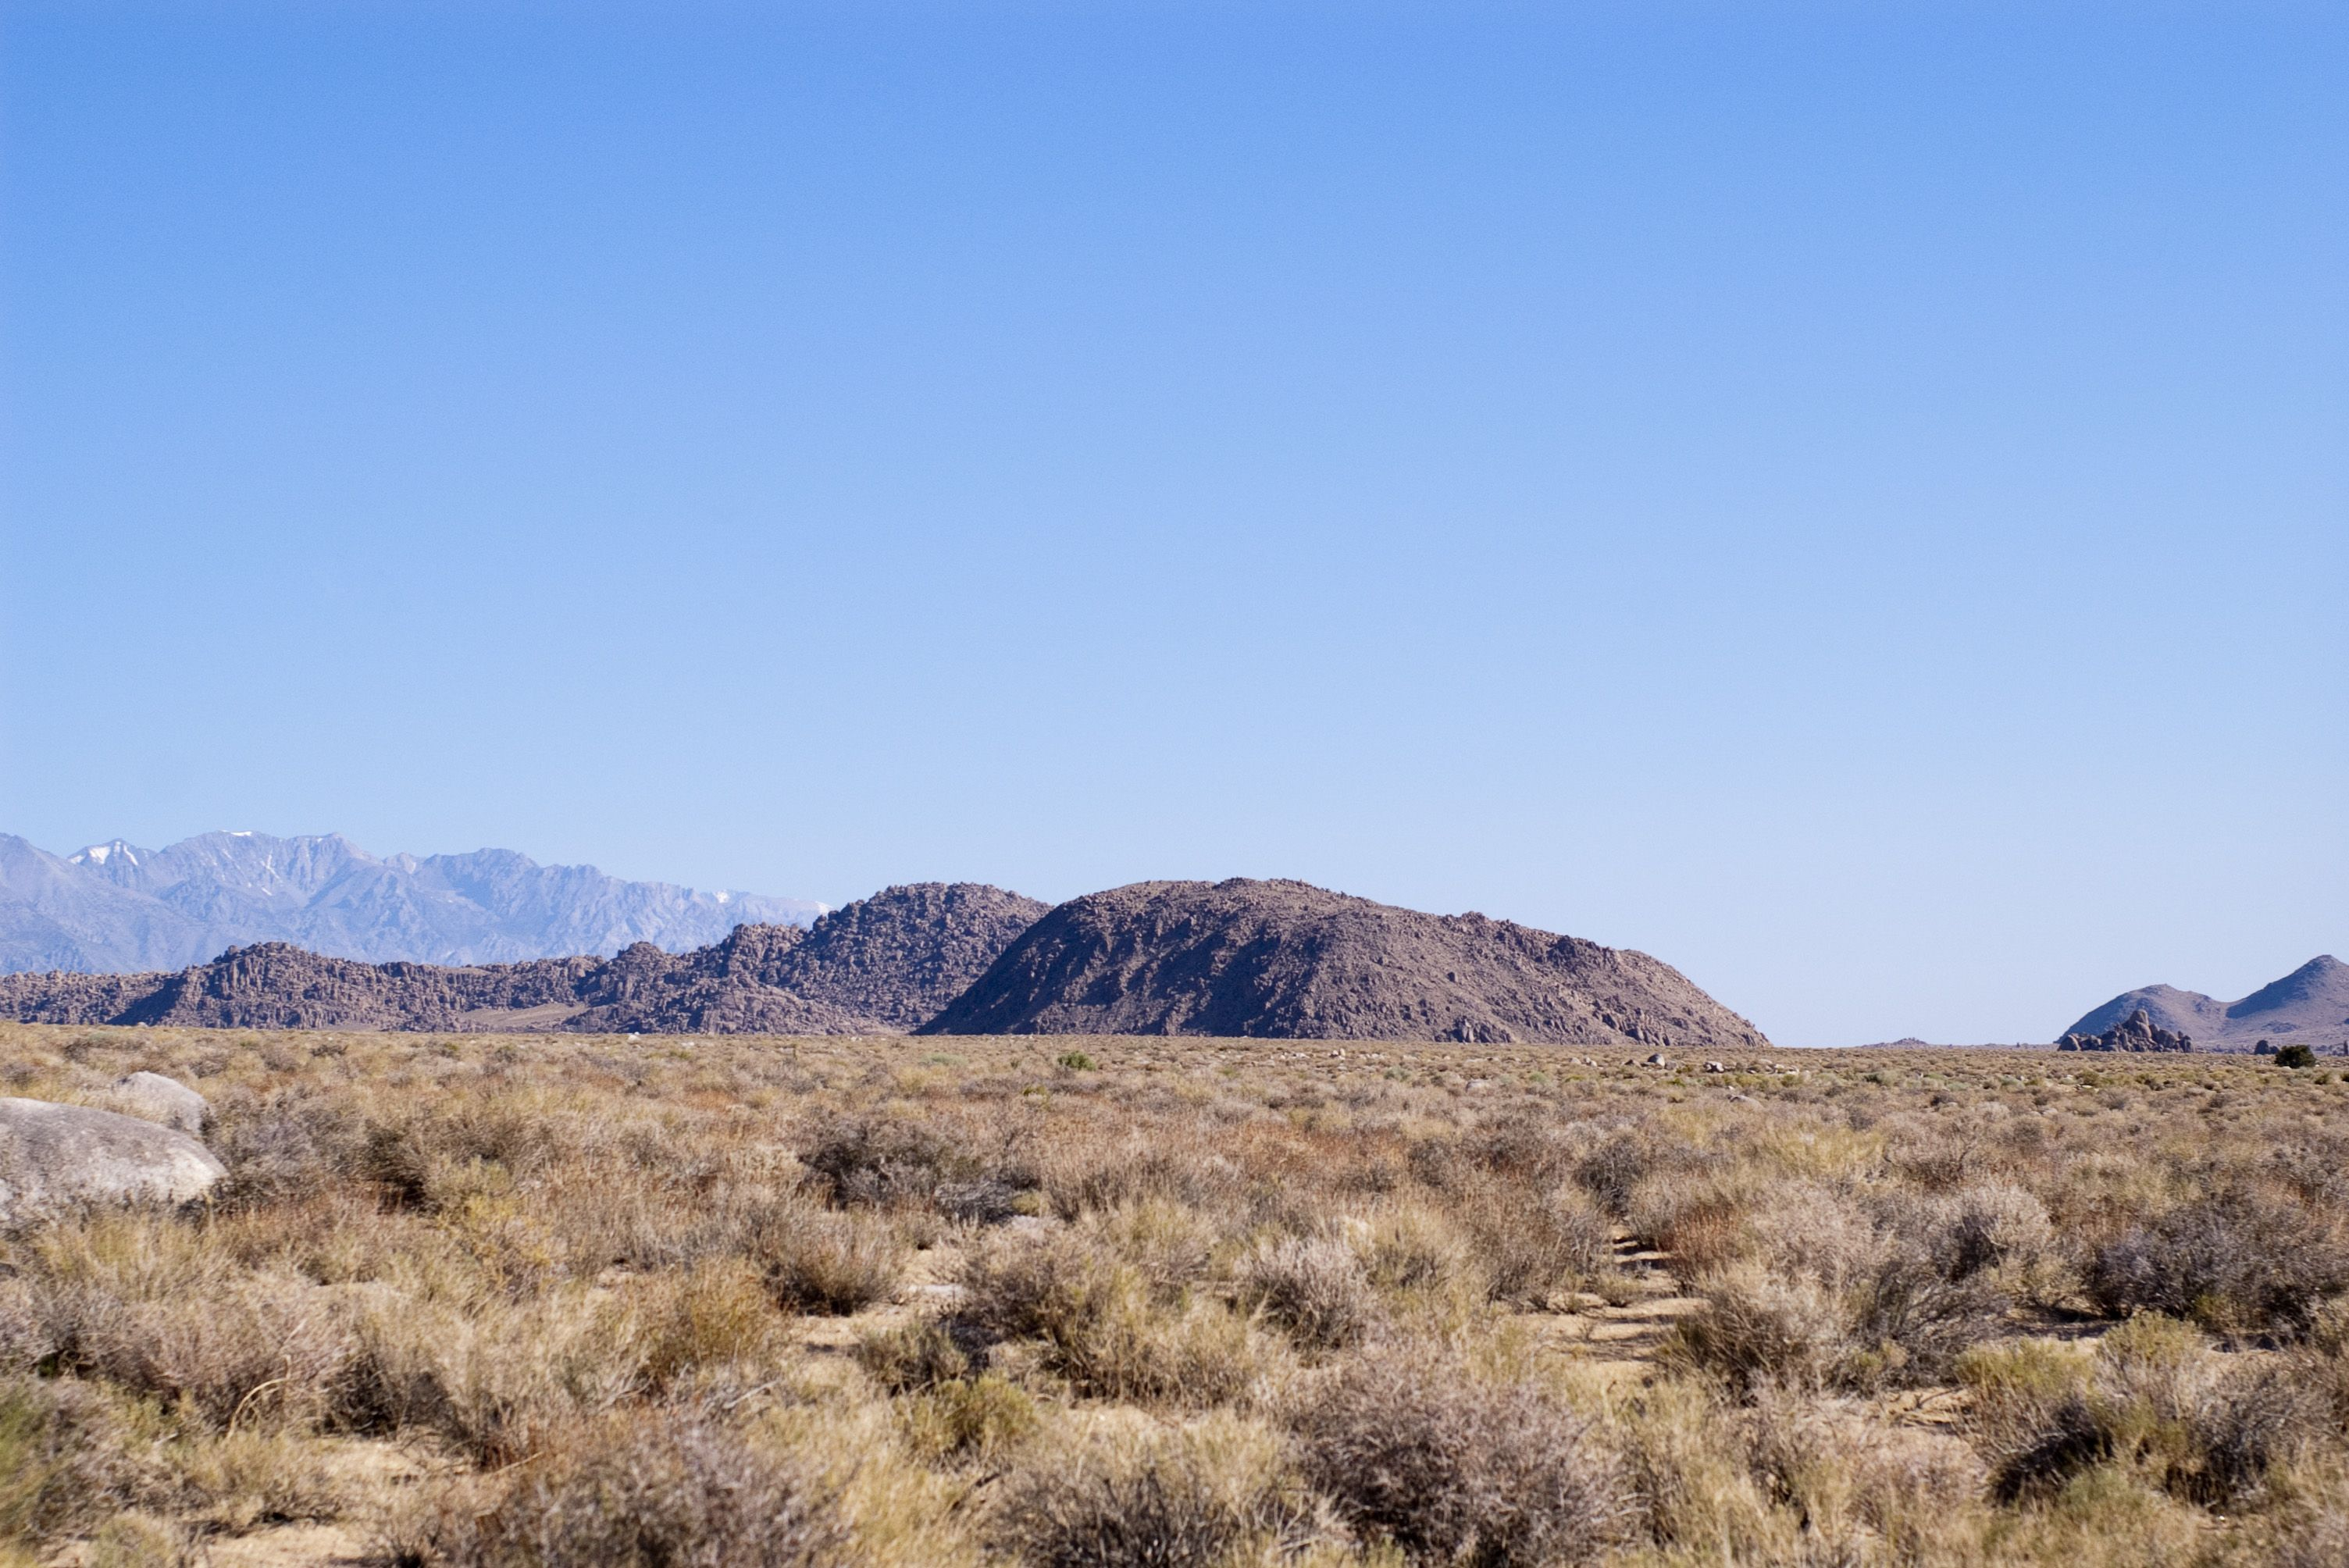 When I Nearly Died in Death Valley (You Won't Believe What Happened Out There!)